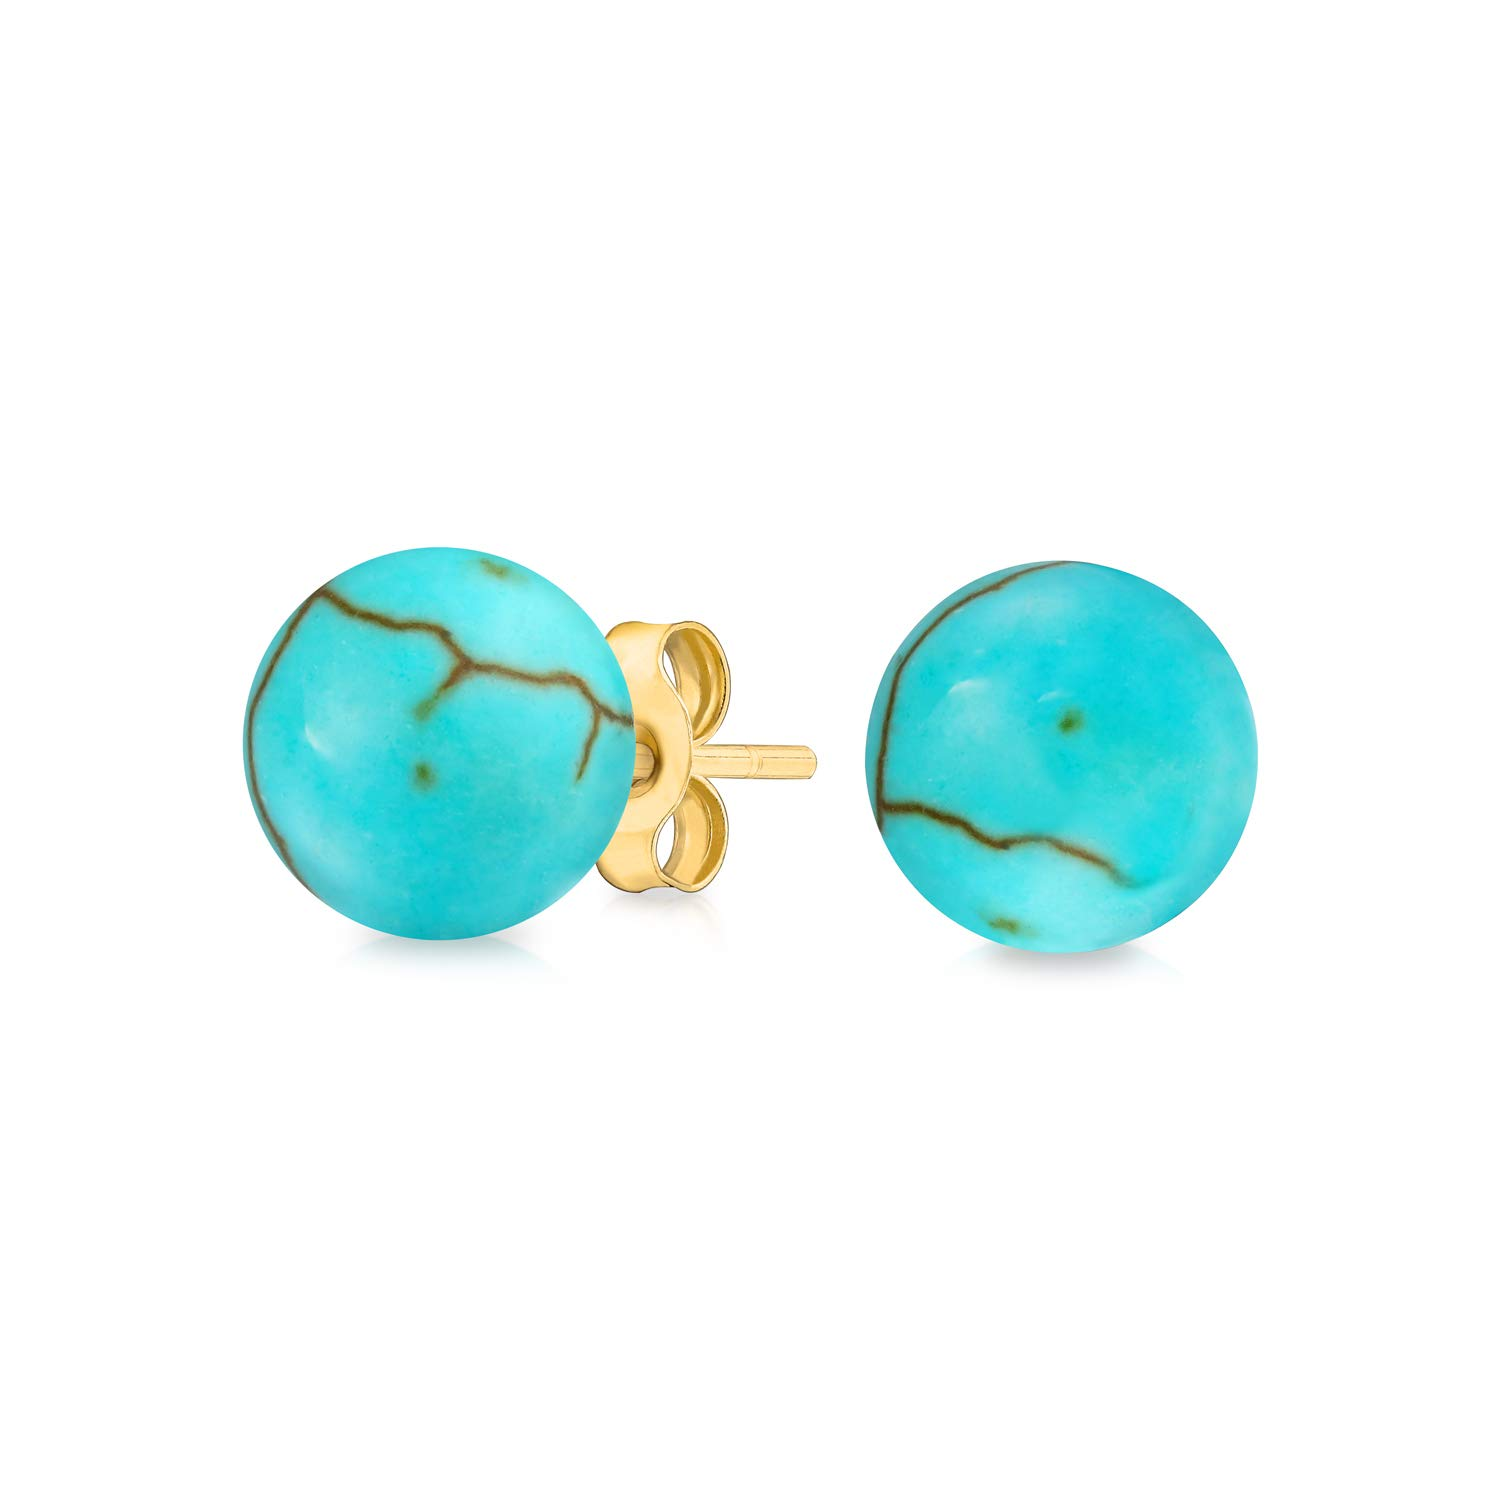 cde78d8df Amazon.com: Classic Simple Natural Turquoise December Birthstone Round Ball Stud  Post Earrings For Women Real 14K Yellow Gold 6mm: Jewelry